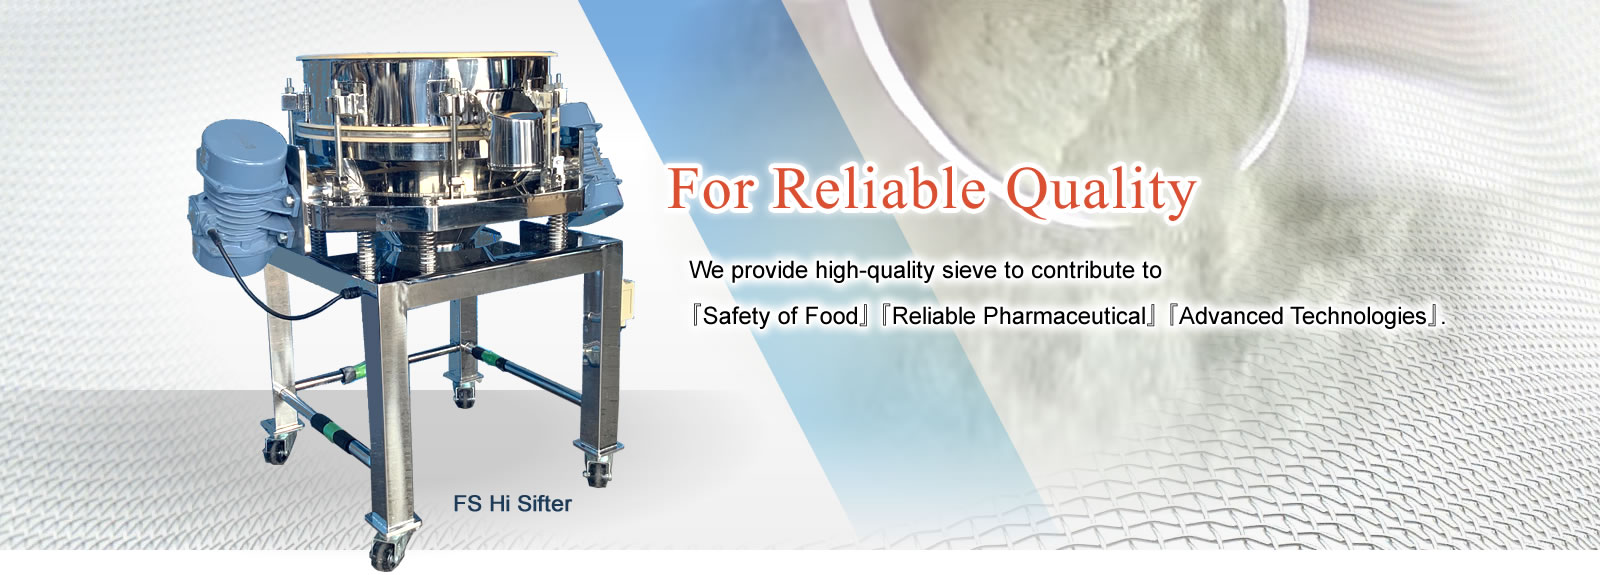 For Reliable Quality